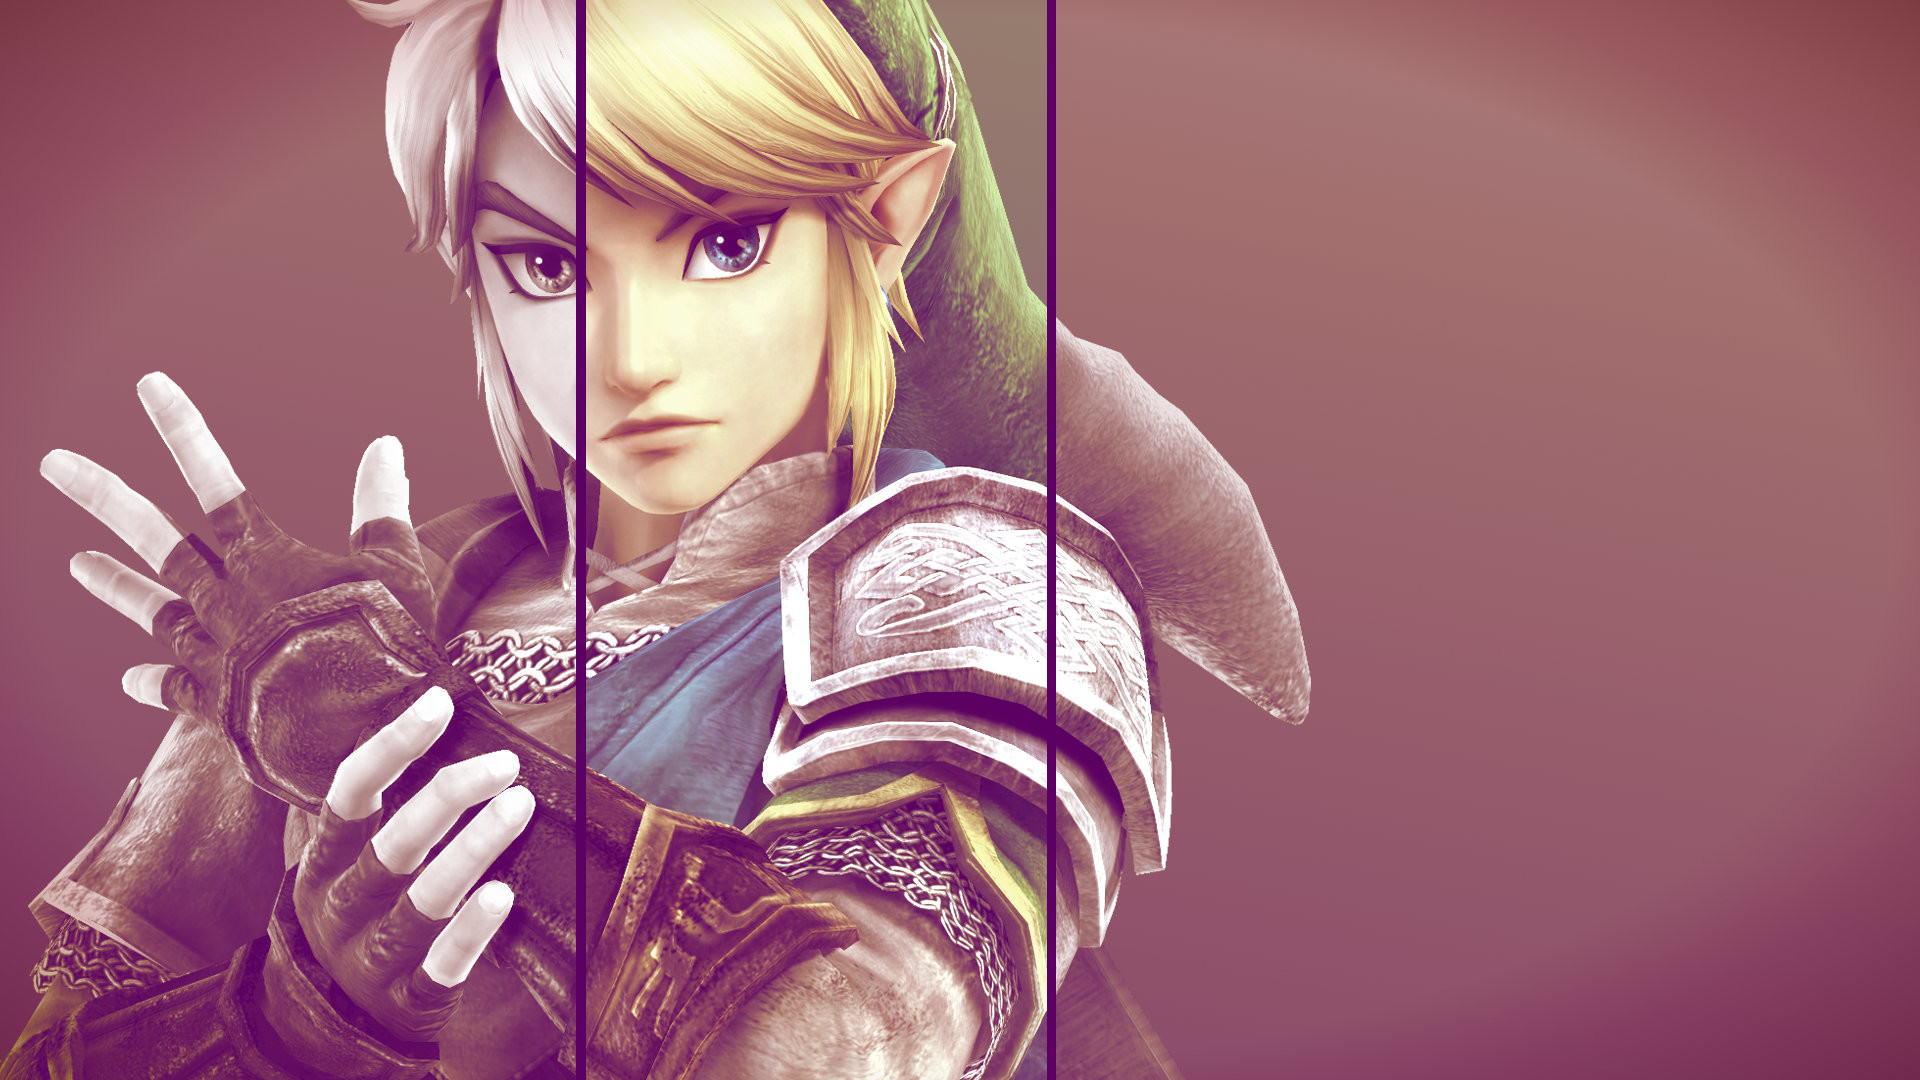 … Link wallpaper by Midna-angel